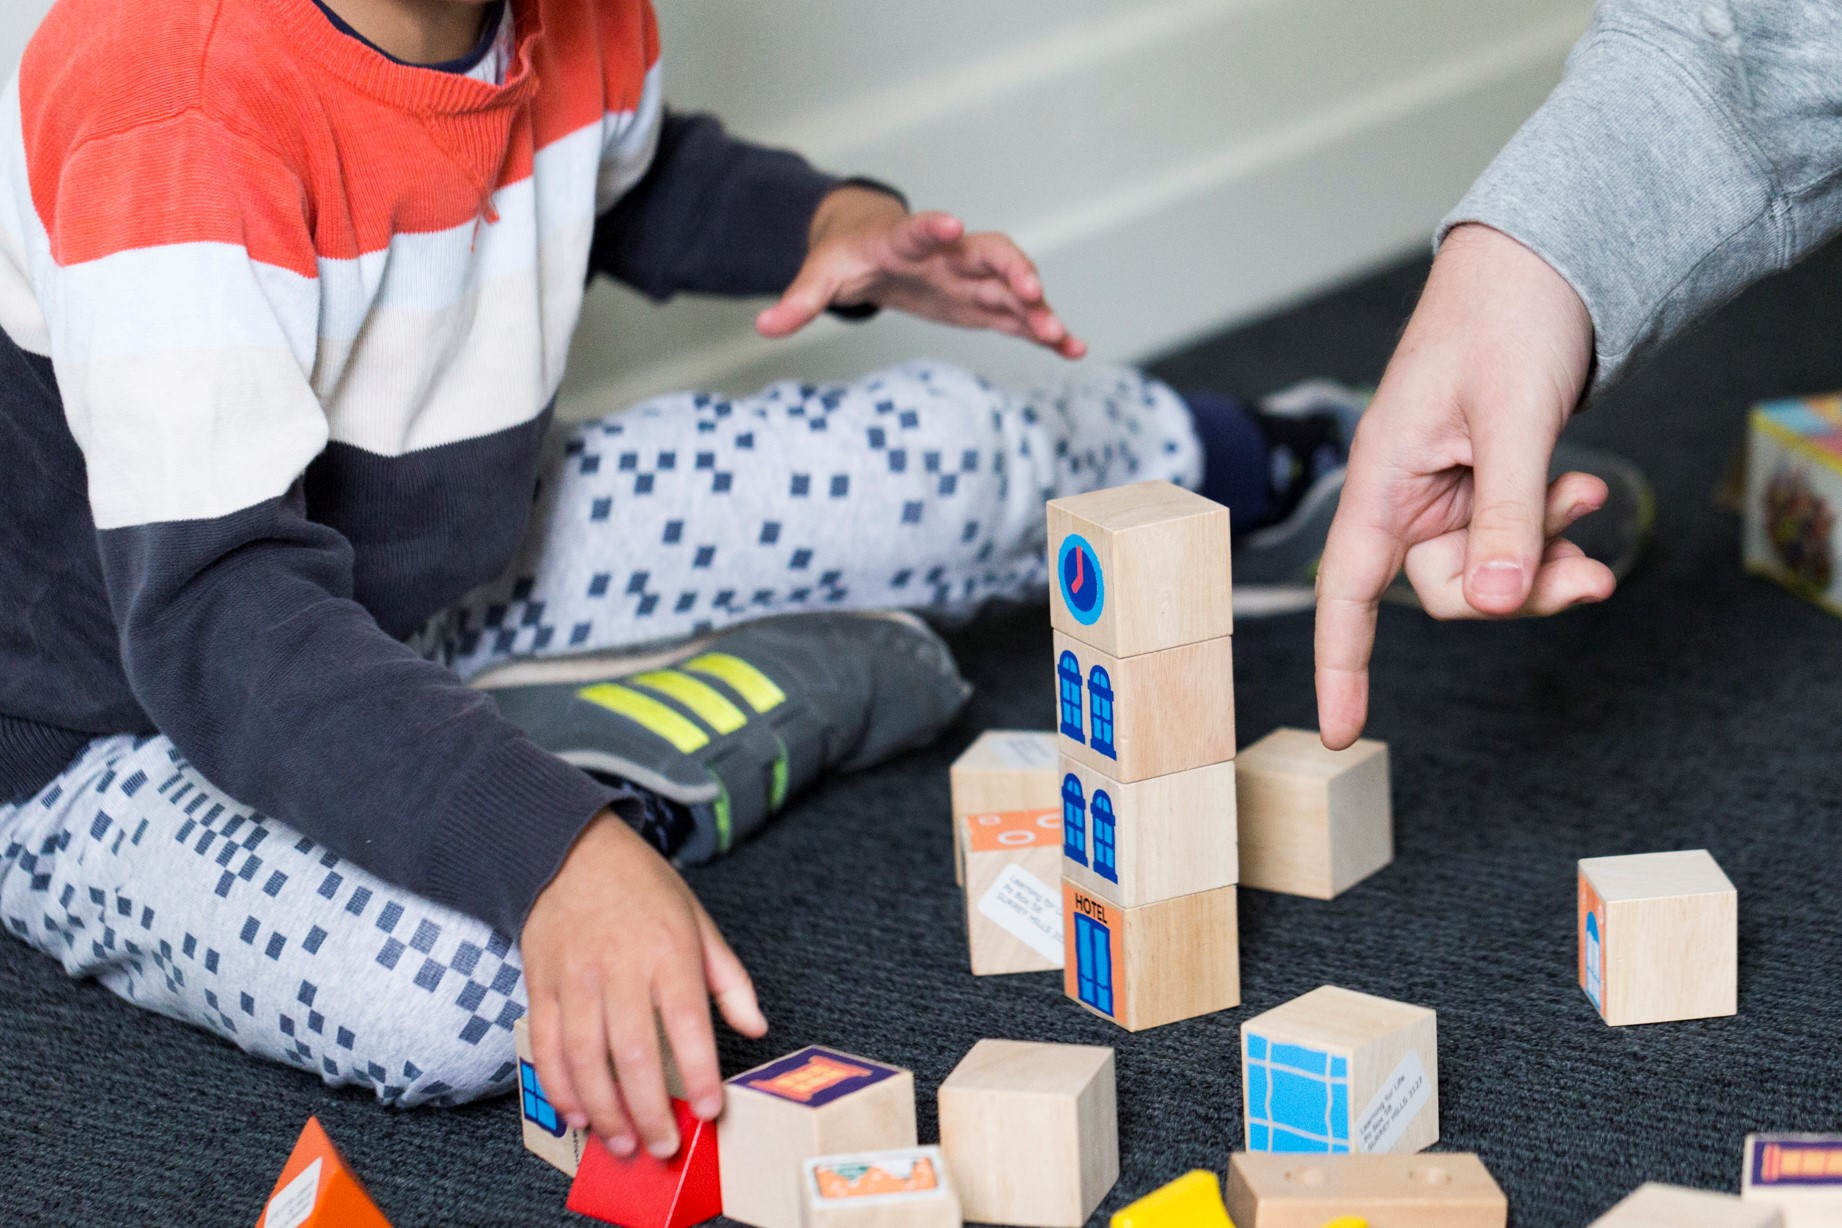 ABA therapist working with autistic child using building blocks